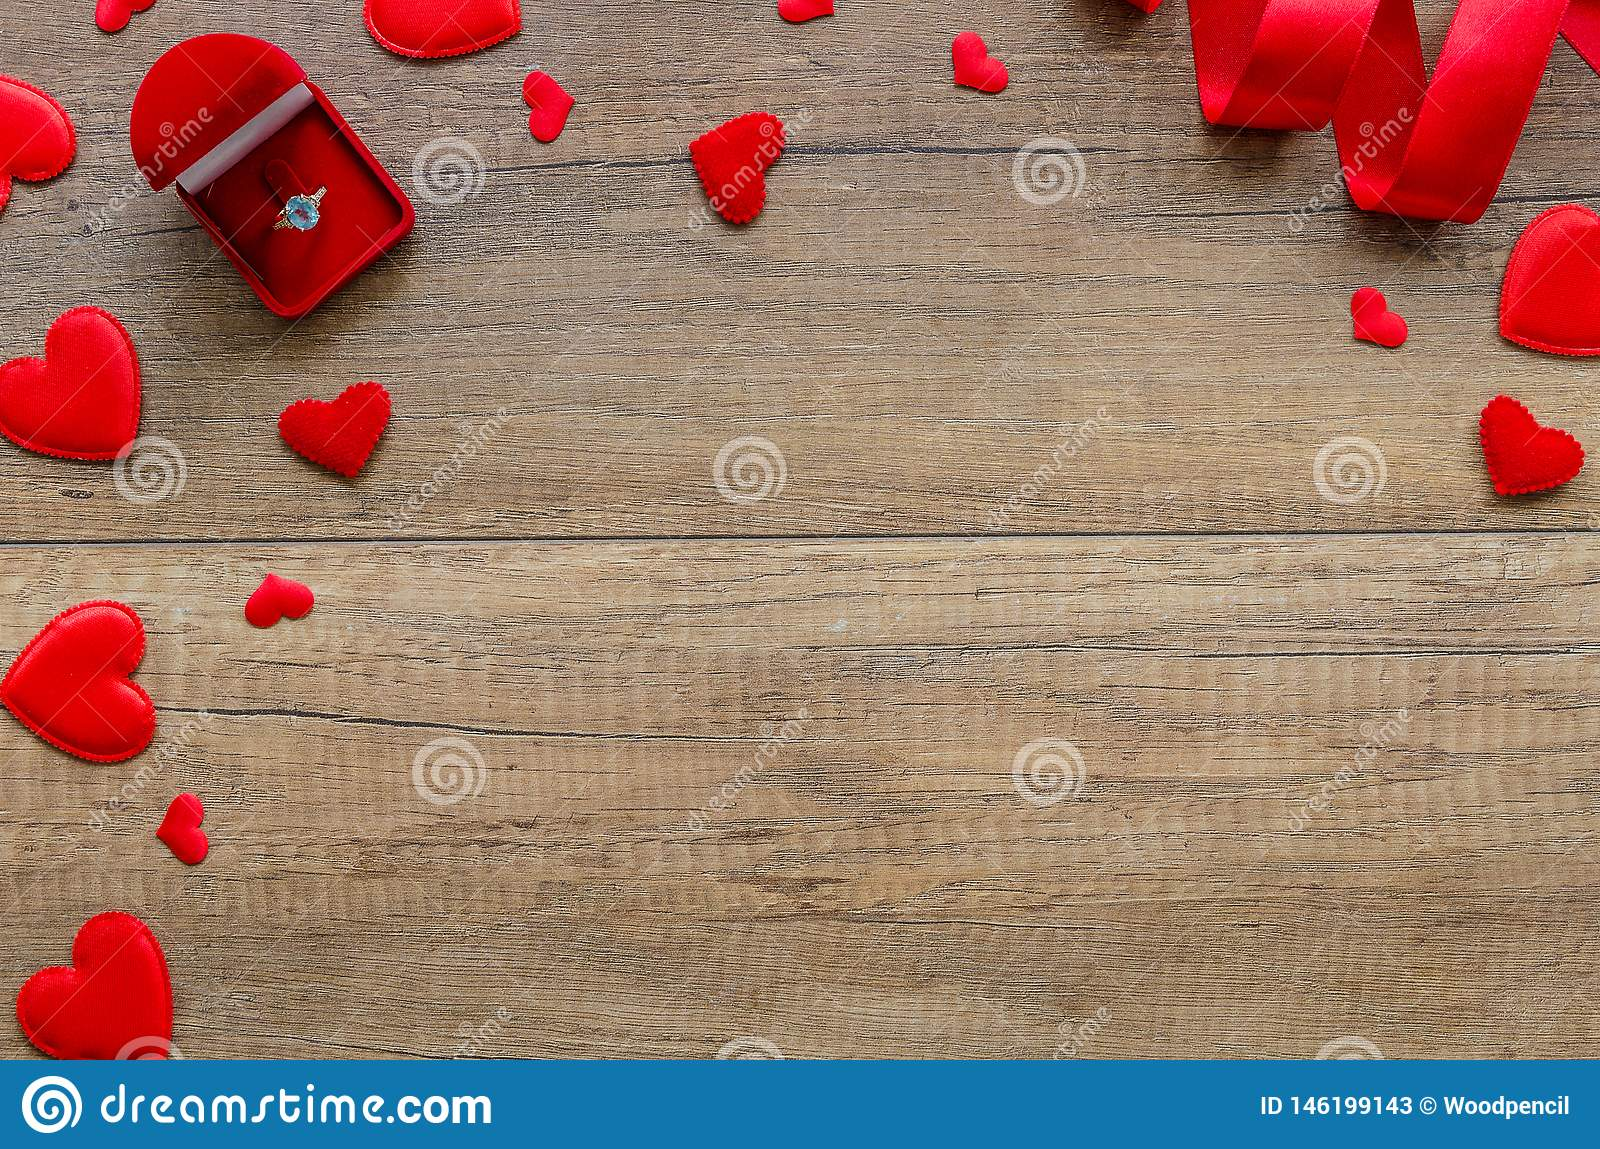 Marriage proposal and engagement concept with romantic arrangement felt red hearts, and ring box on wooden background